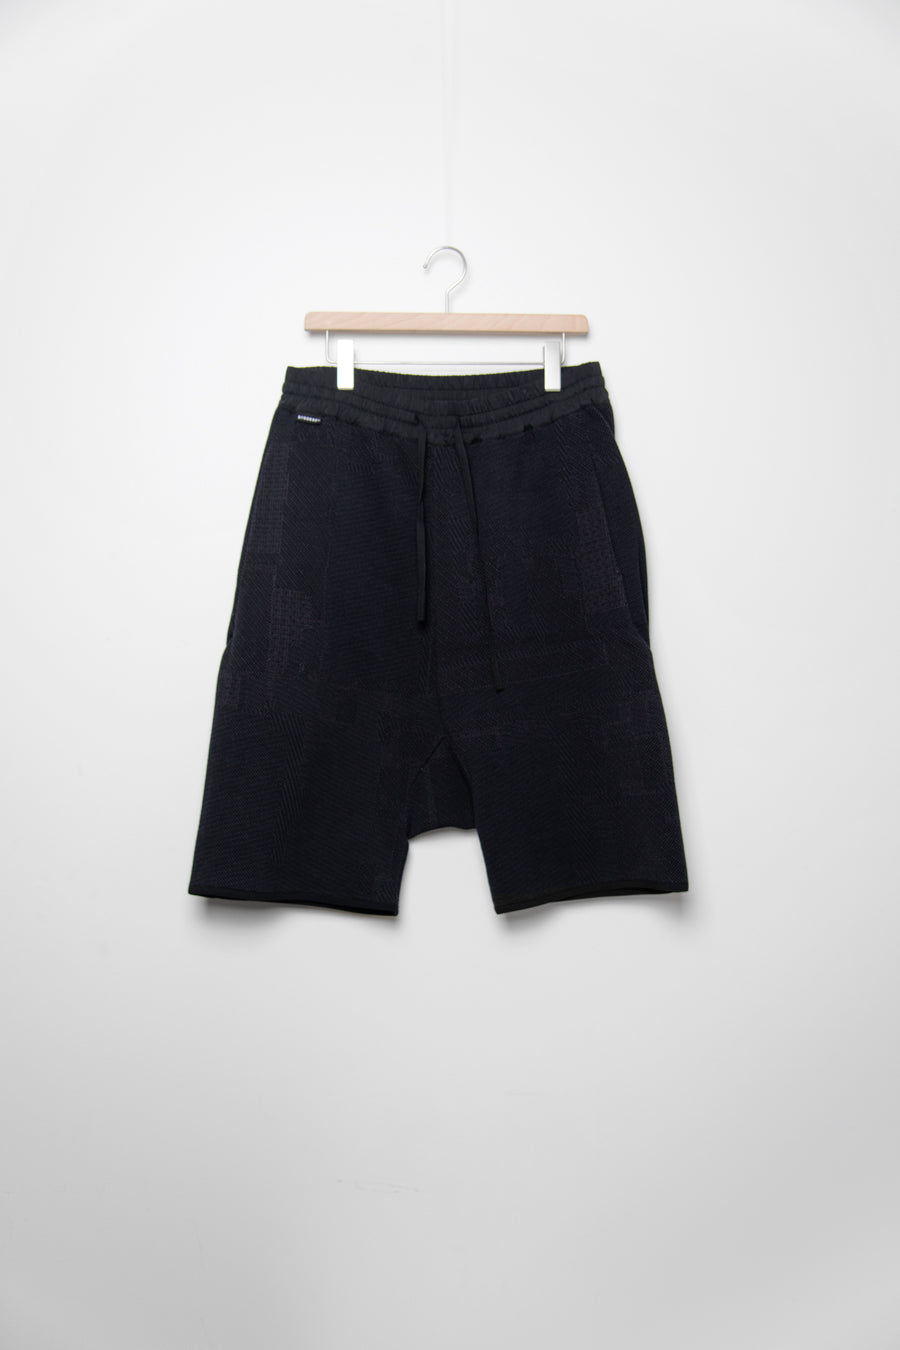 Cotton Knit Short Black